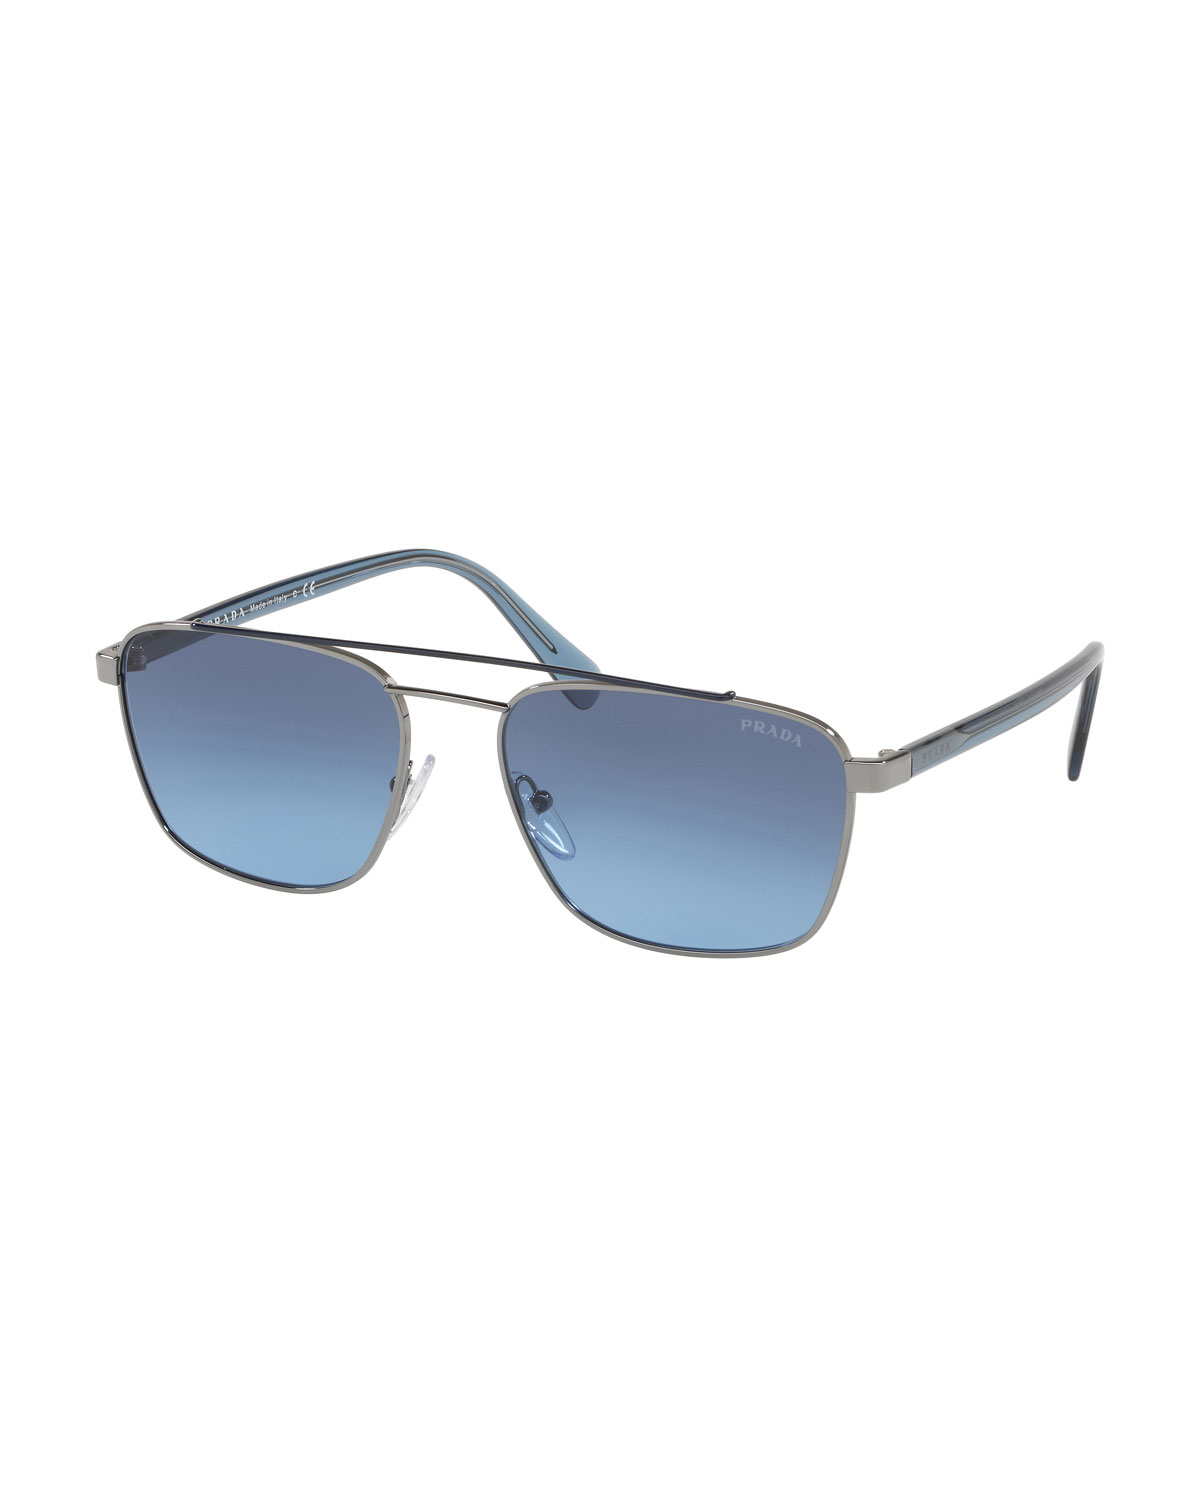 9ac18bd5cadd Prada Men's Square Metal Aviator Sunglasses - Gradient Lenses ...